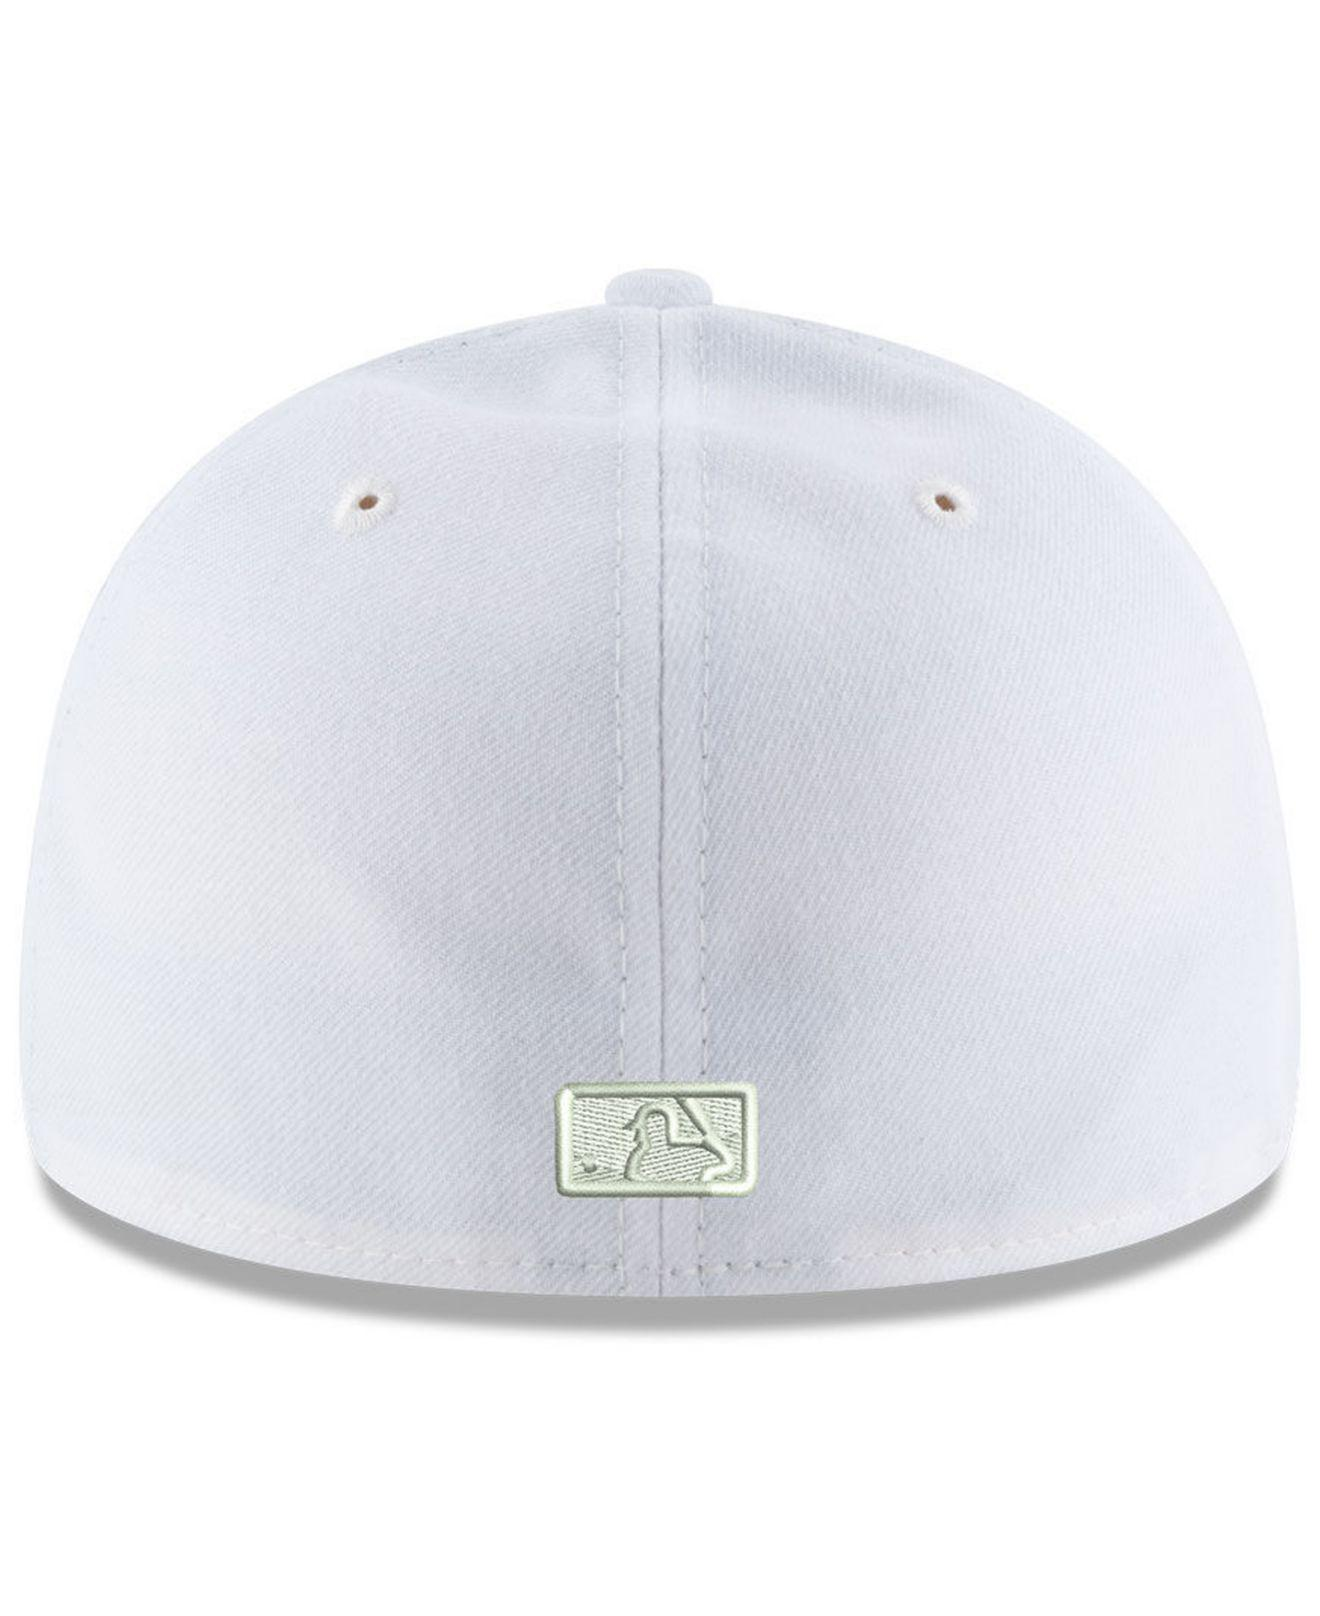 75ff09dffed ... canada ktz detroit tigers triple white low profile 59fifty fitted cap  for men lyst. view